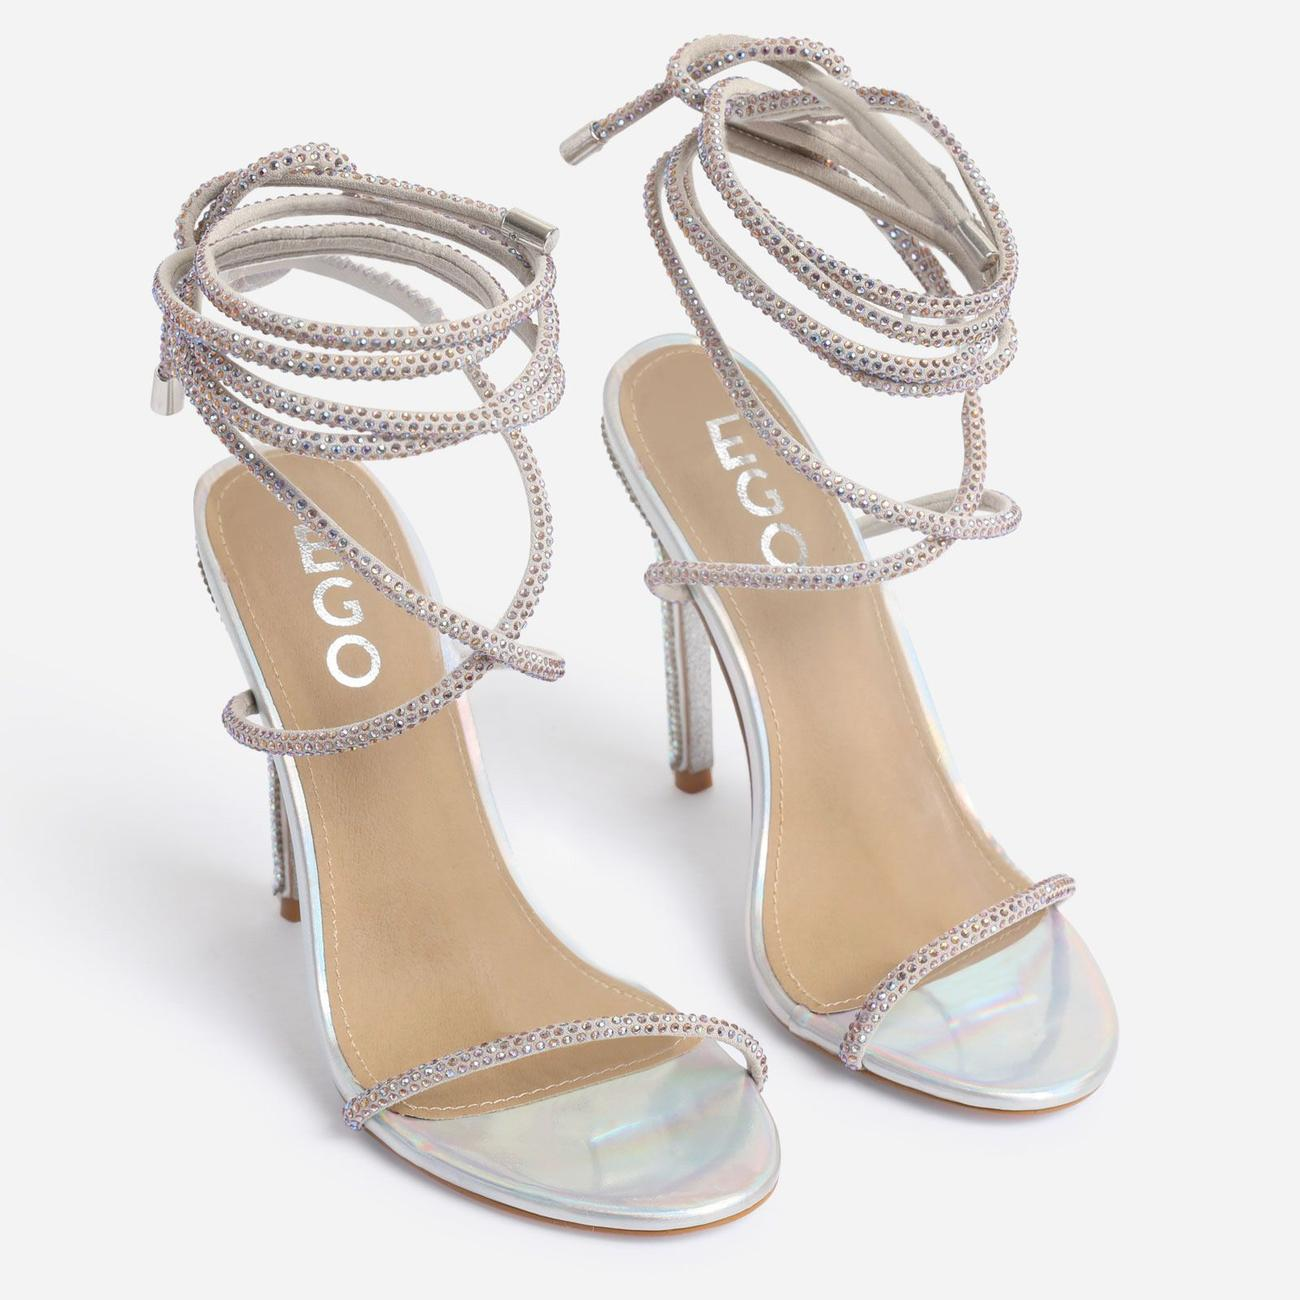 Carmella Glitter Sole Diamante Detail Lace Up Heel In Silver Holographic Faux Leather Image 3